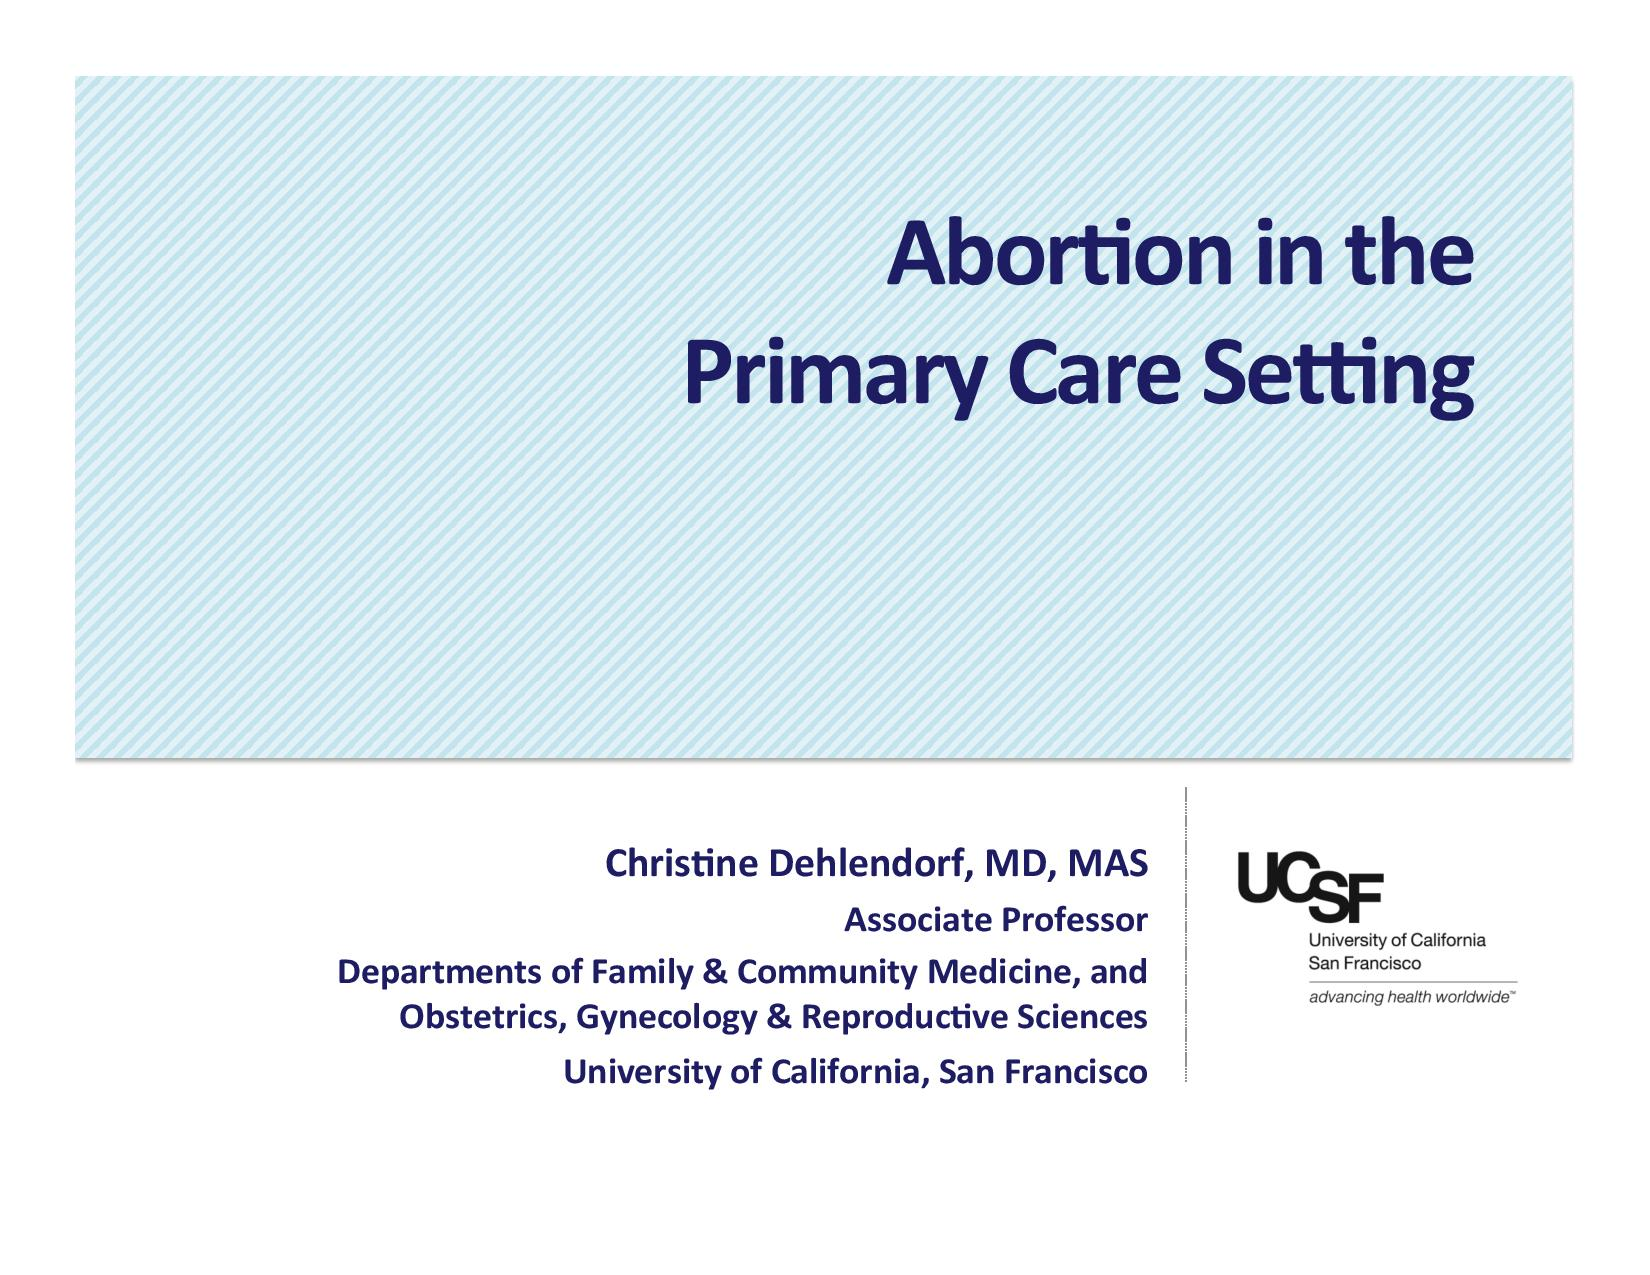 Abortion in the Primary Care Setting Slide Set - Innovating